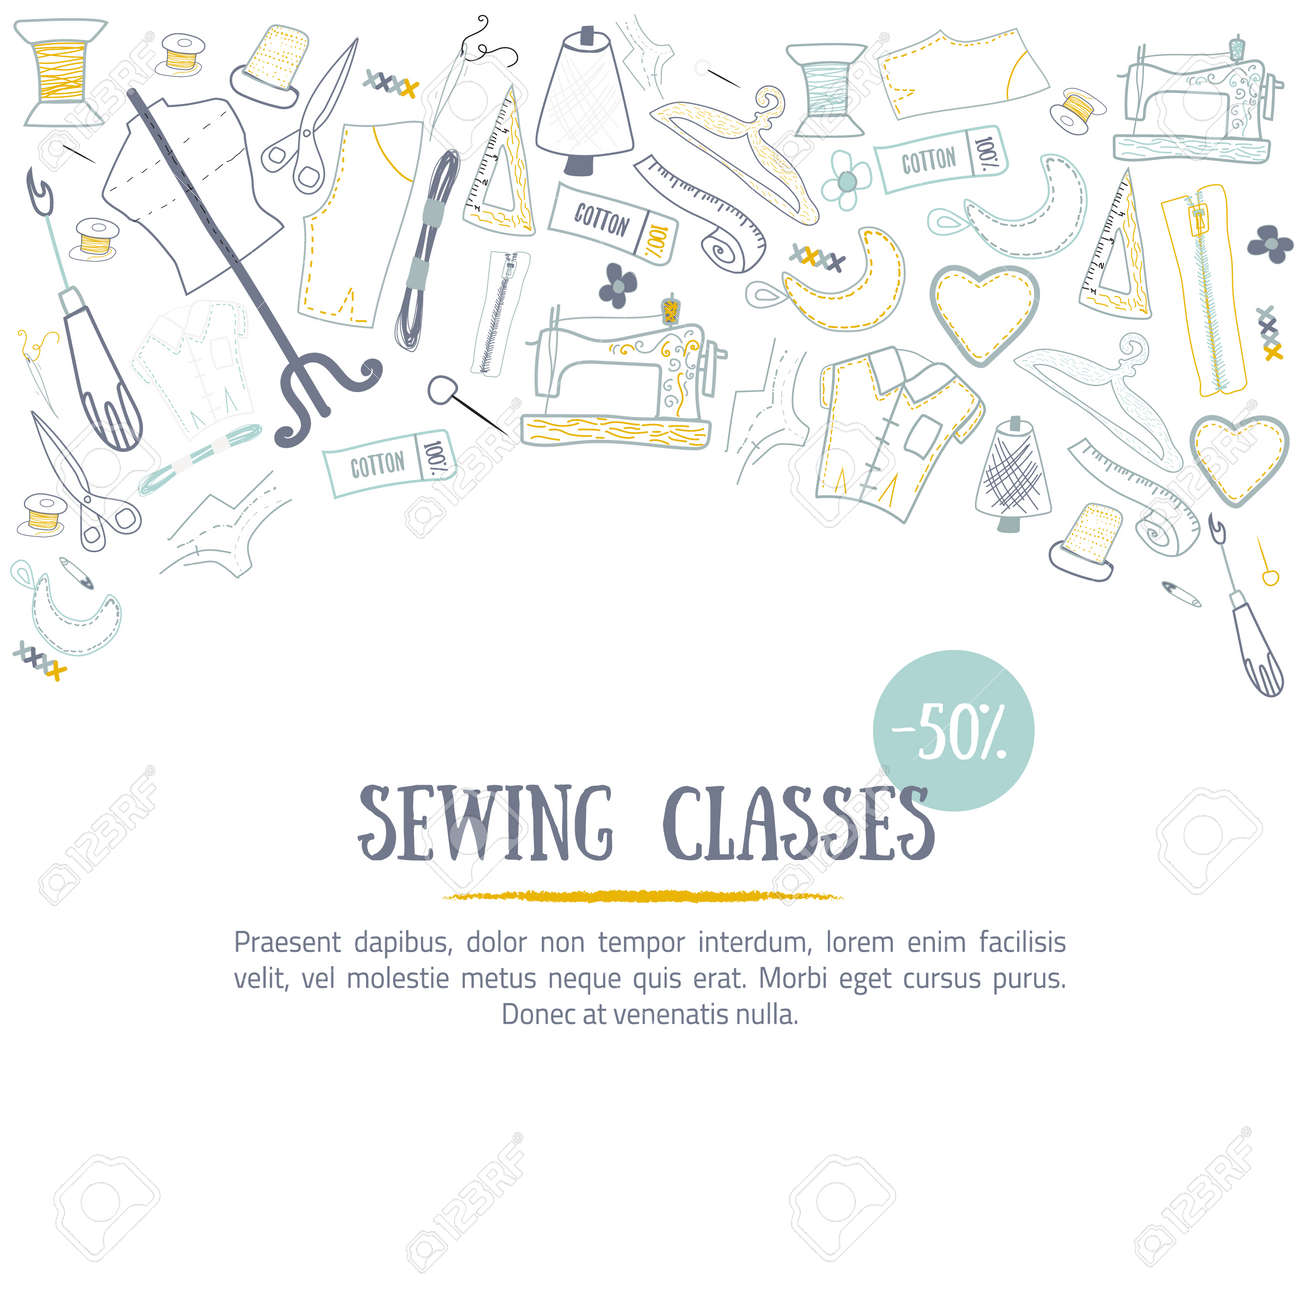 Sewing classes banner design with needle and craft tools  Hobby